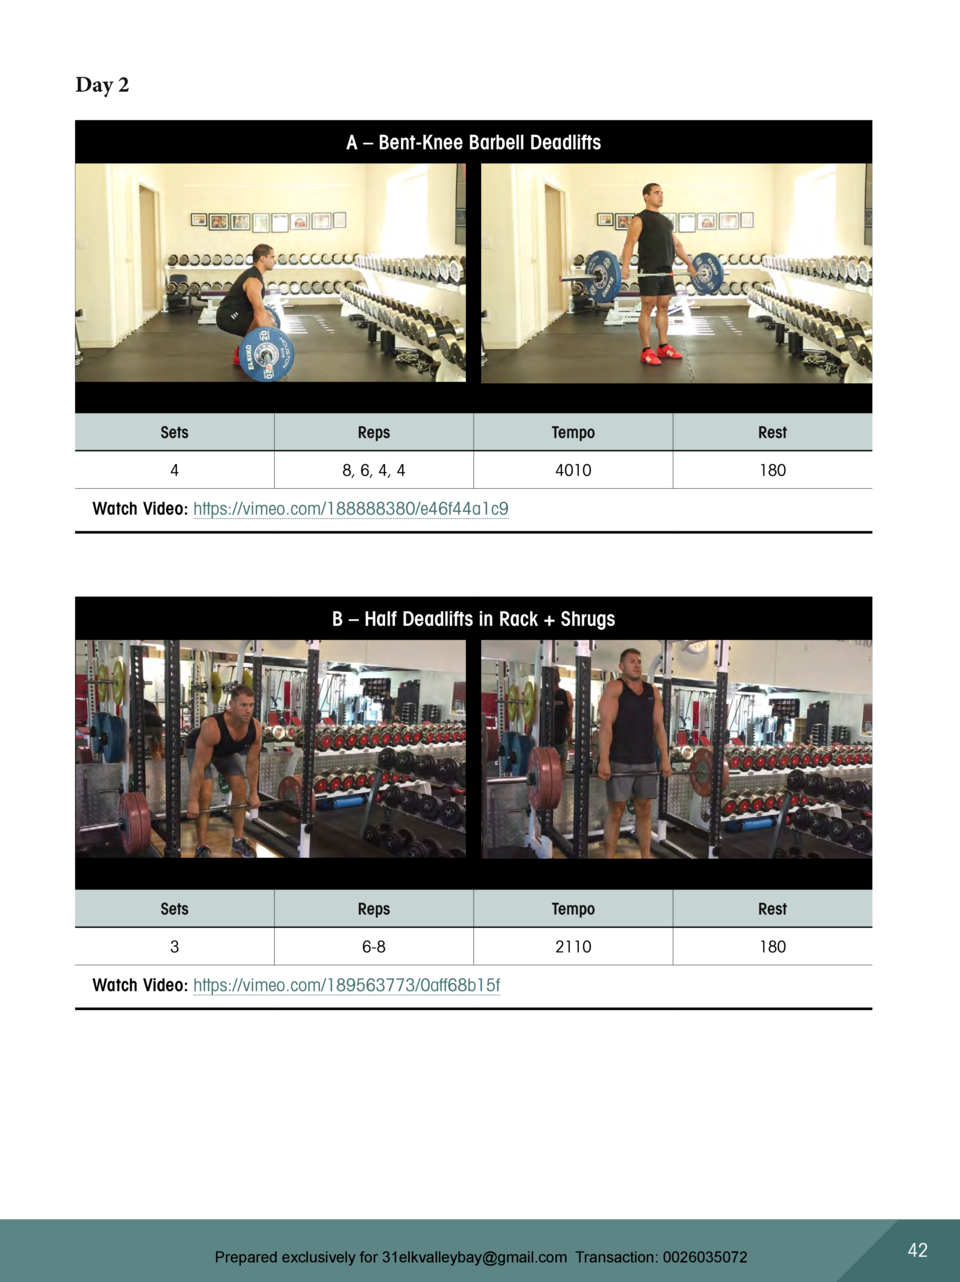 Day 2 A     Bent-Knee Barbell Deadlifts  Sets  Reps  Tempo  Rest  4  8, 6, 4, 4  4010  180  Watch Video  https   vimeo.com...